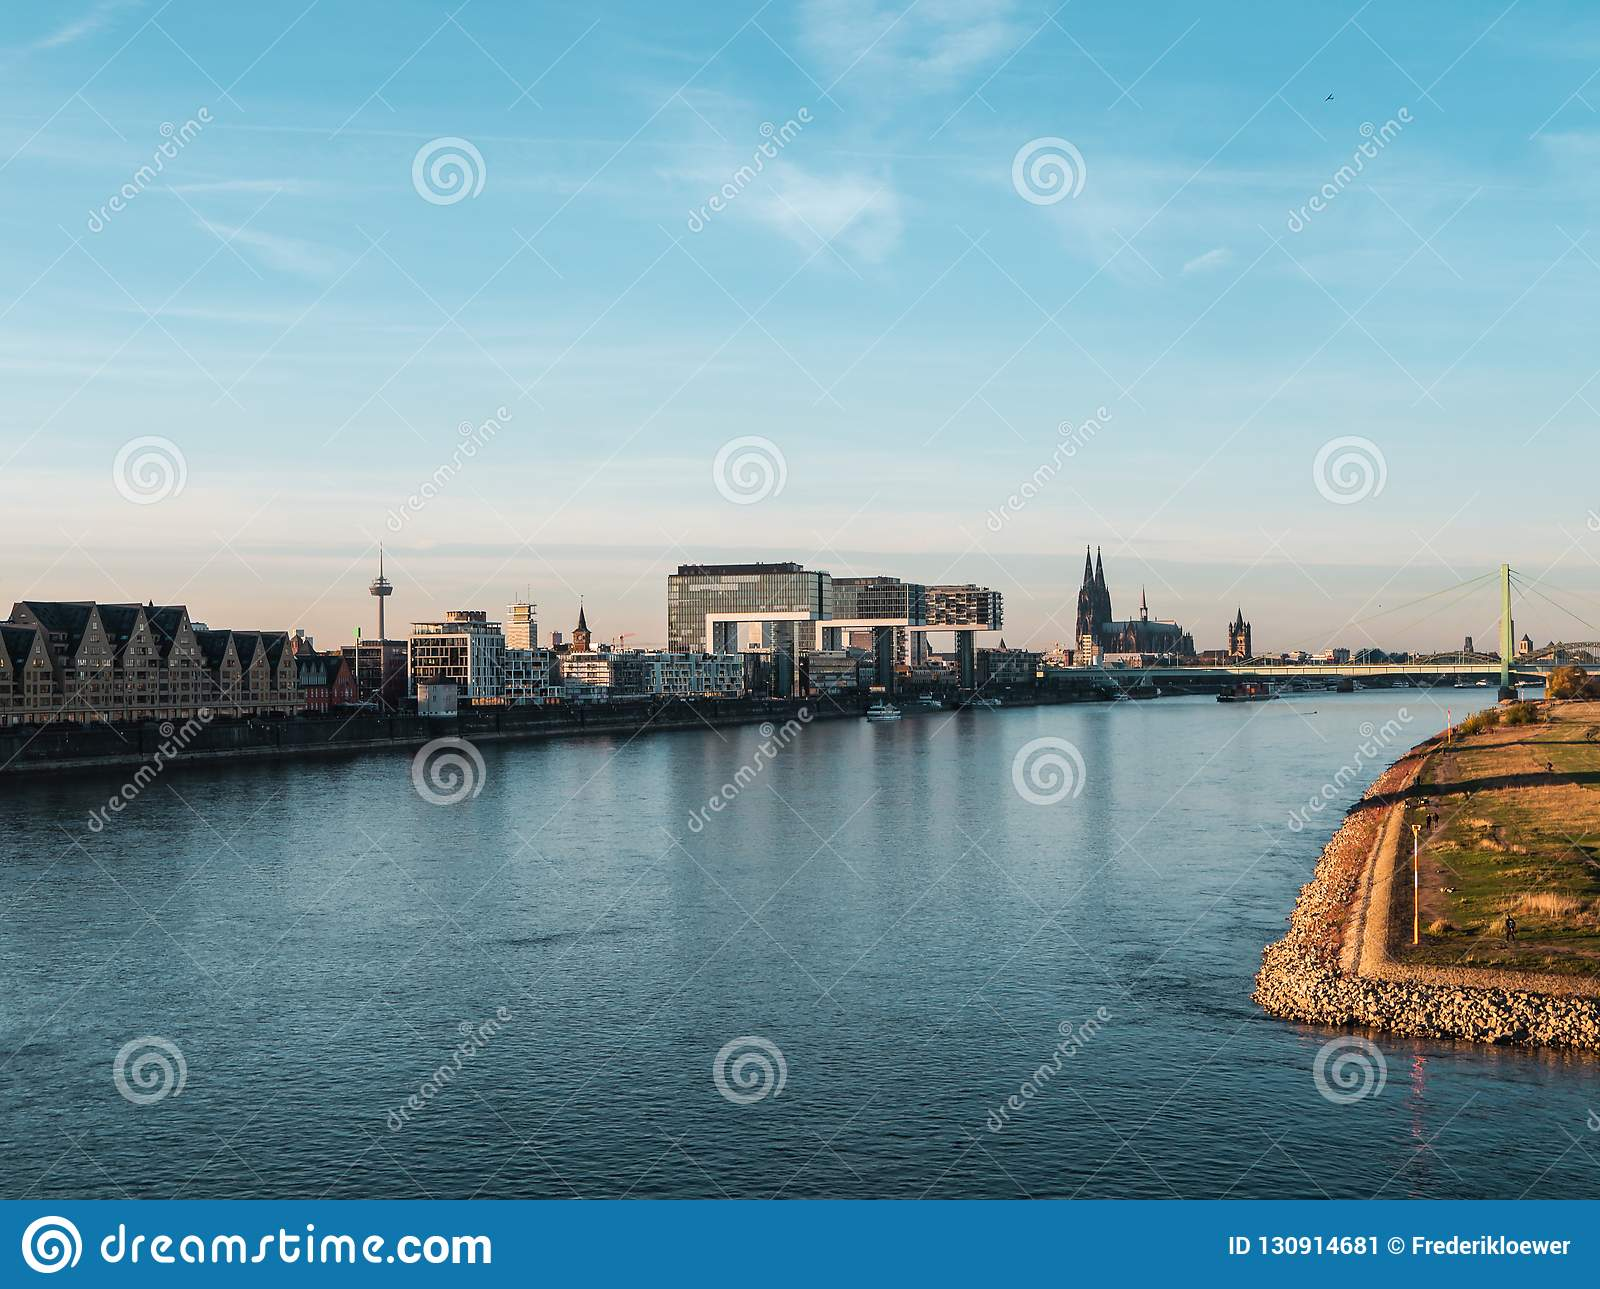 Autumn in Cologne: Cityscape of Cologne, Germany with Cathedral